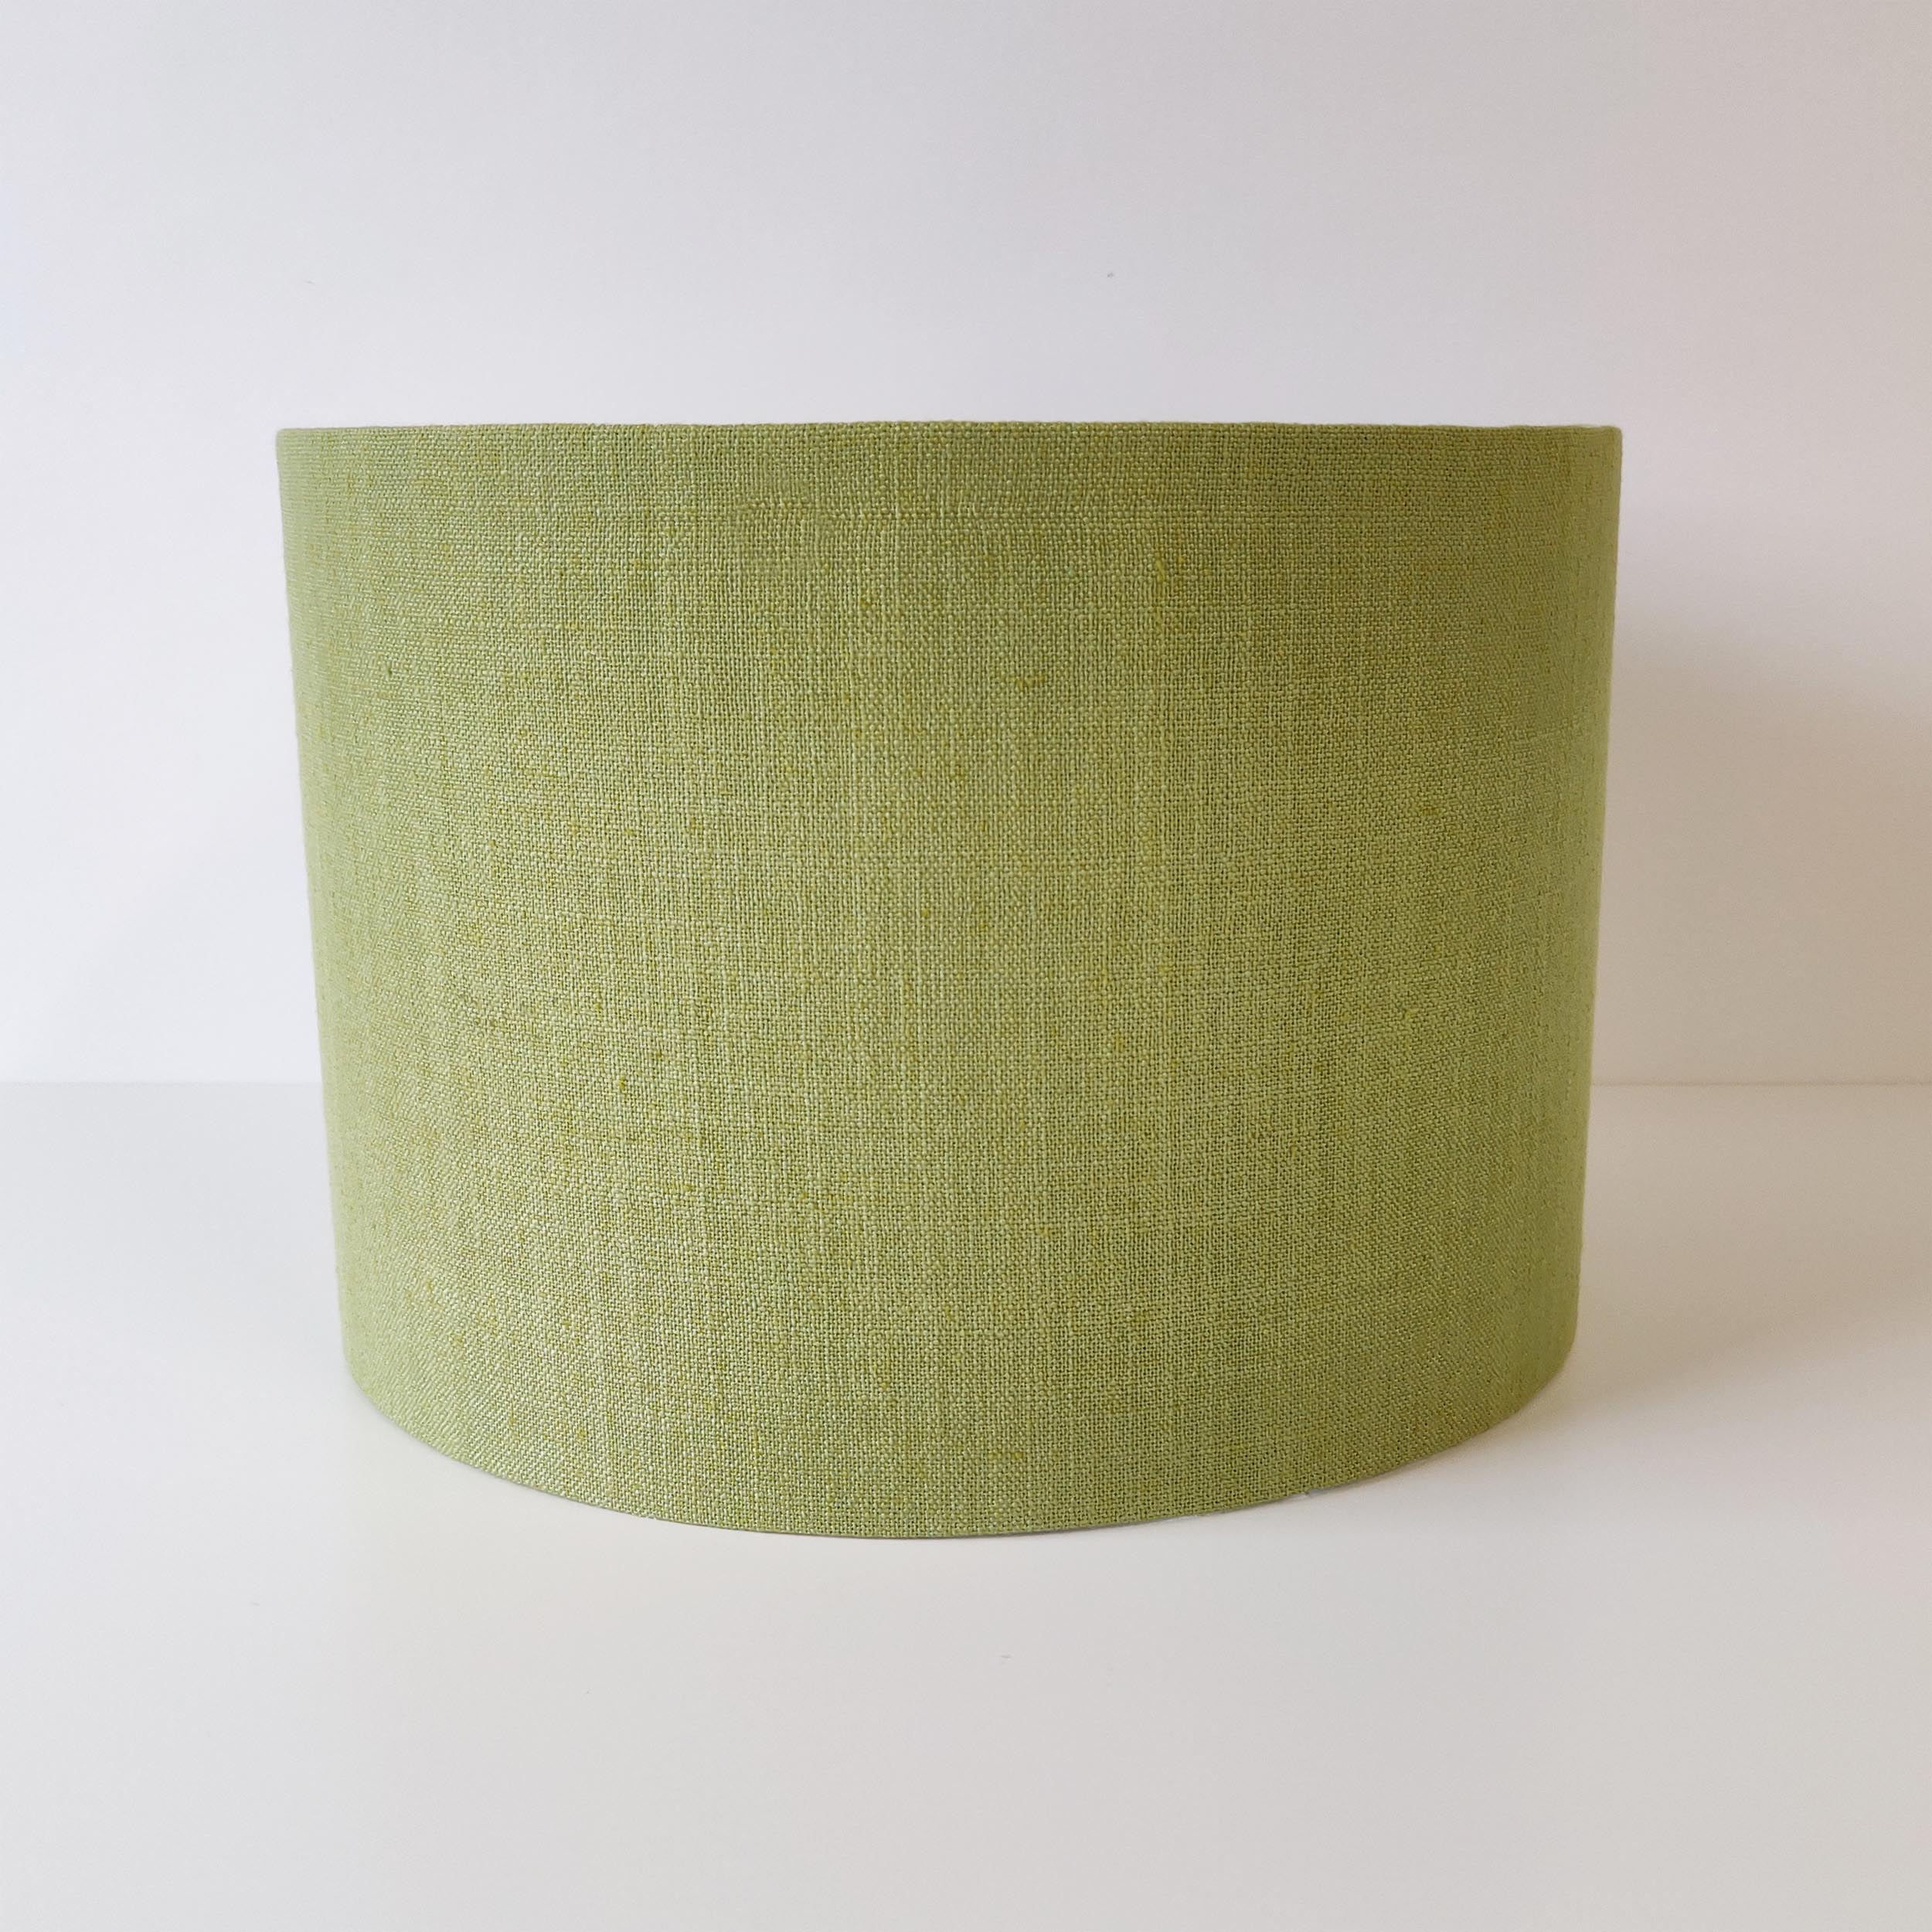 Green Lampshade in Textured Linen